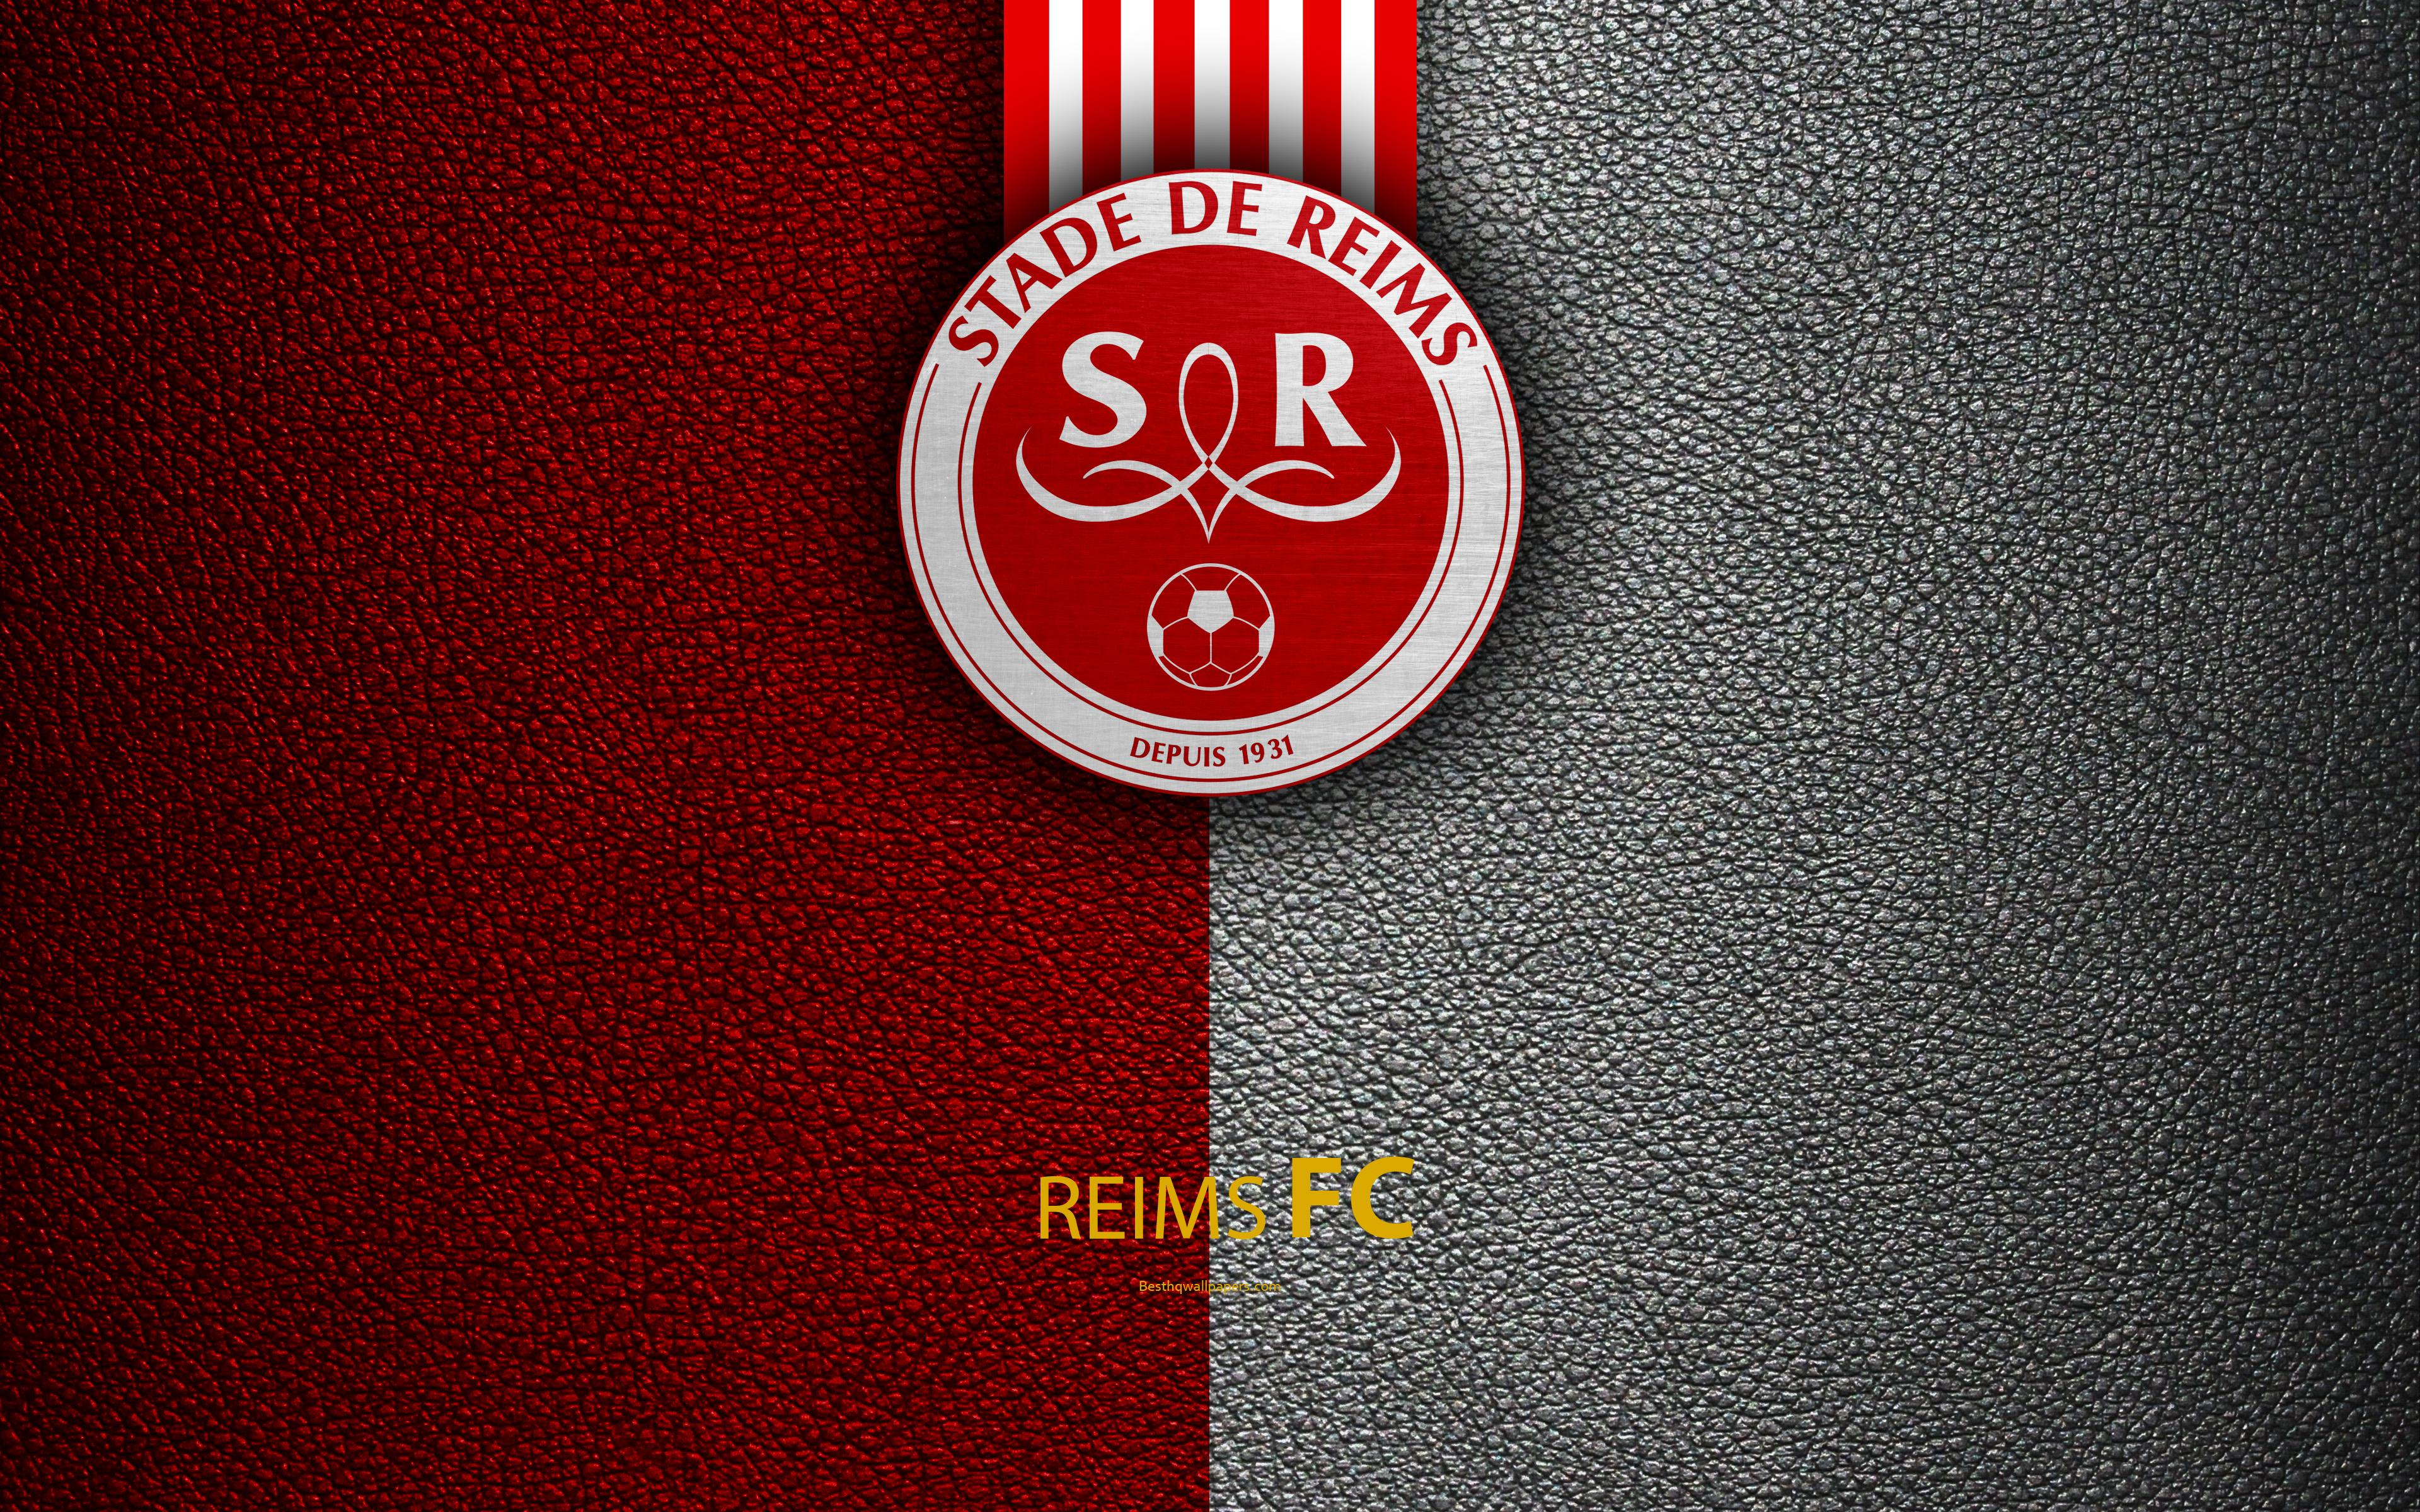 Download wallpapers Reims FC, Stade de Reims FC, French football